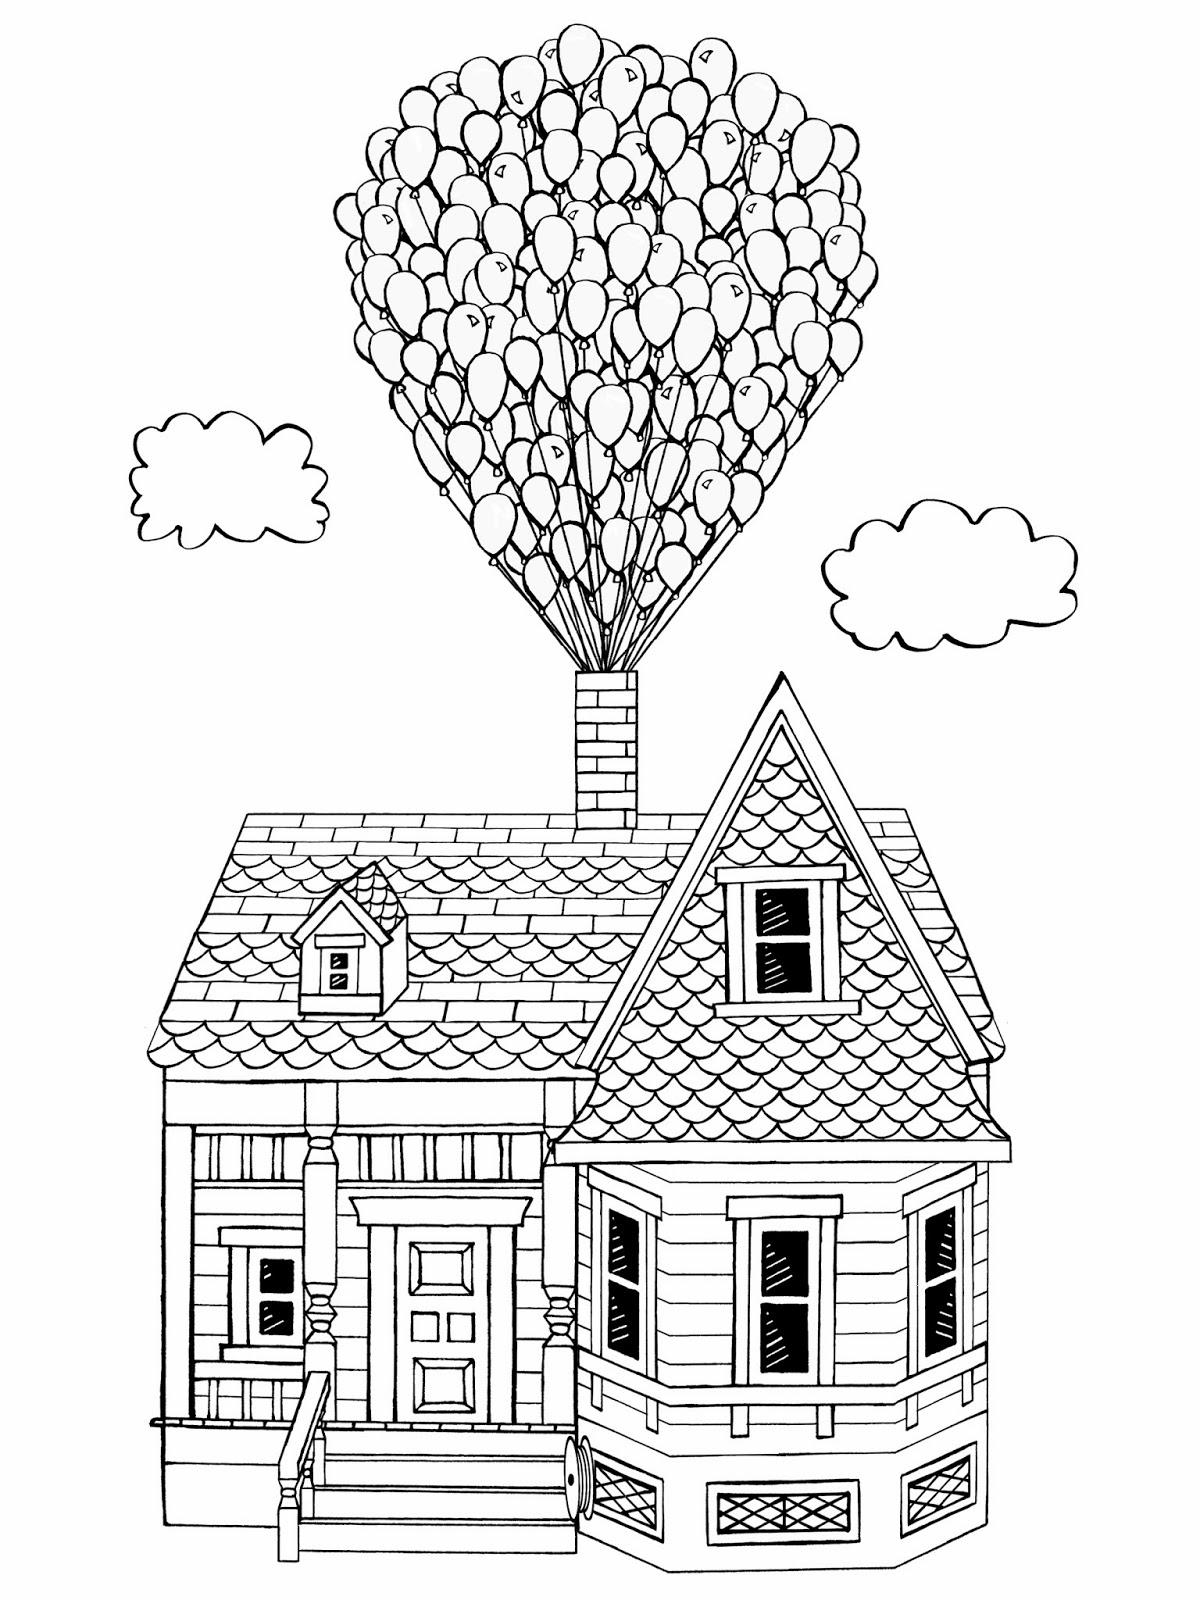 up coloring book pages - photo#29